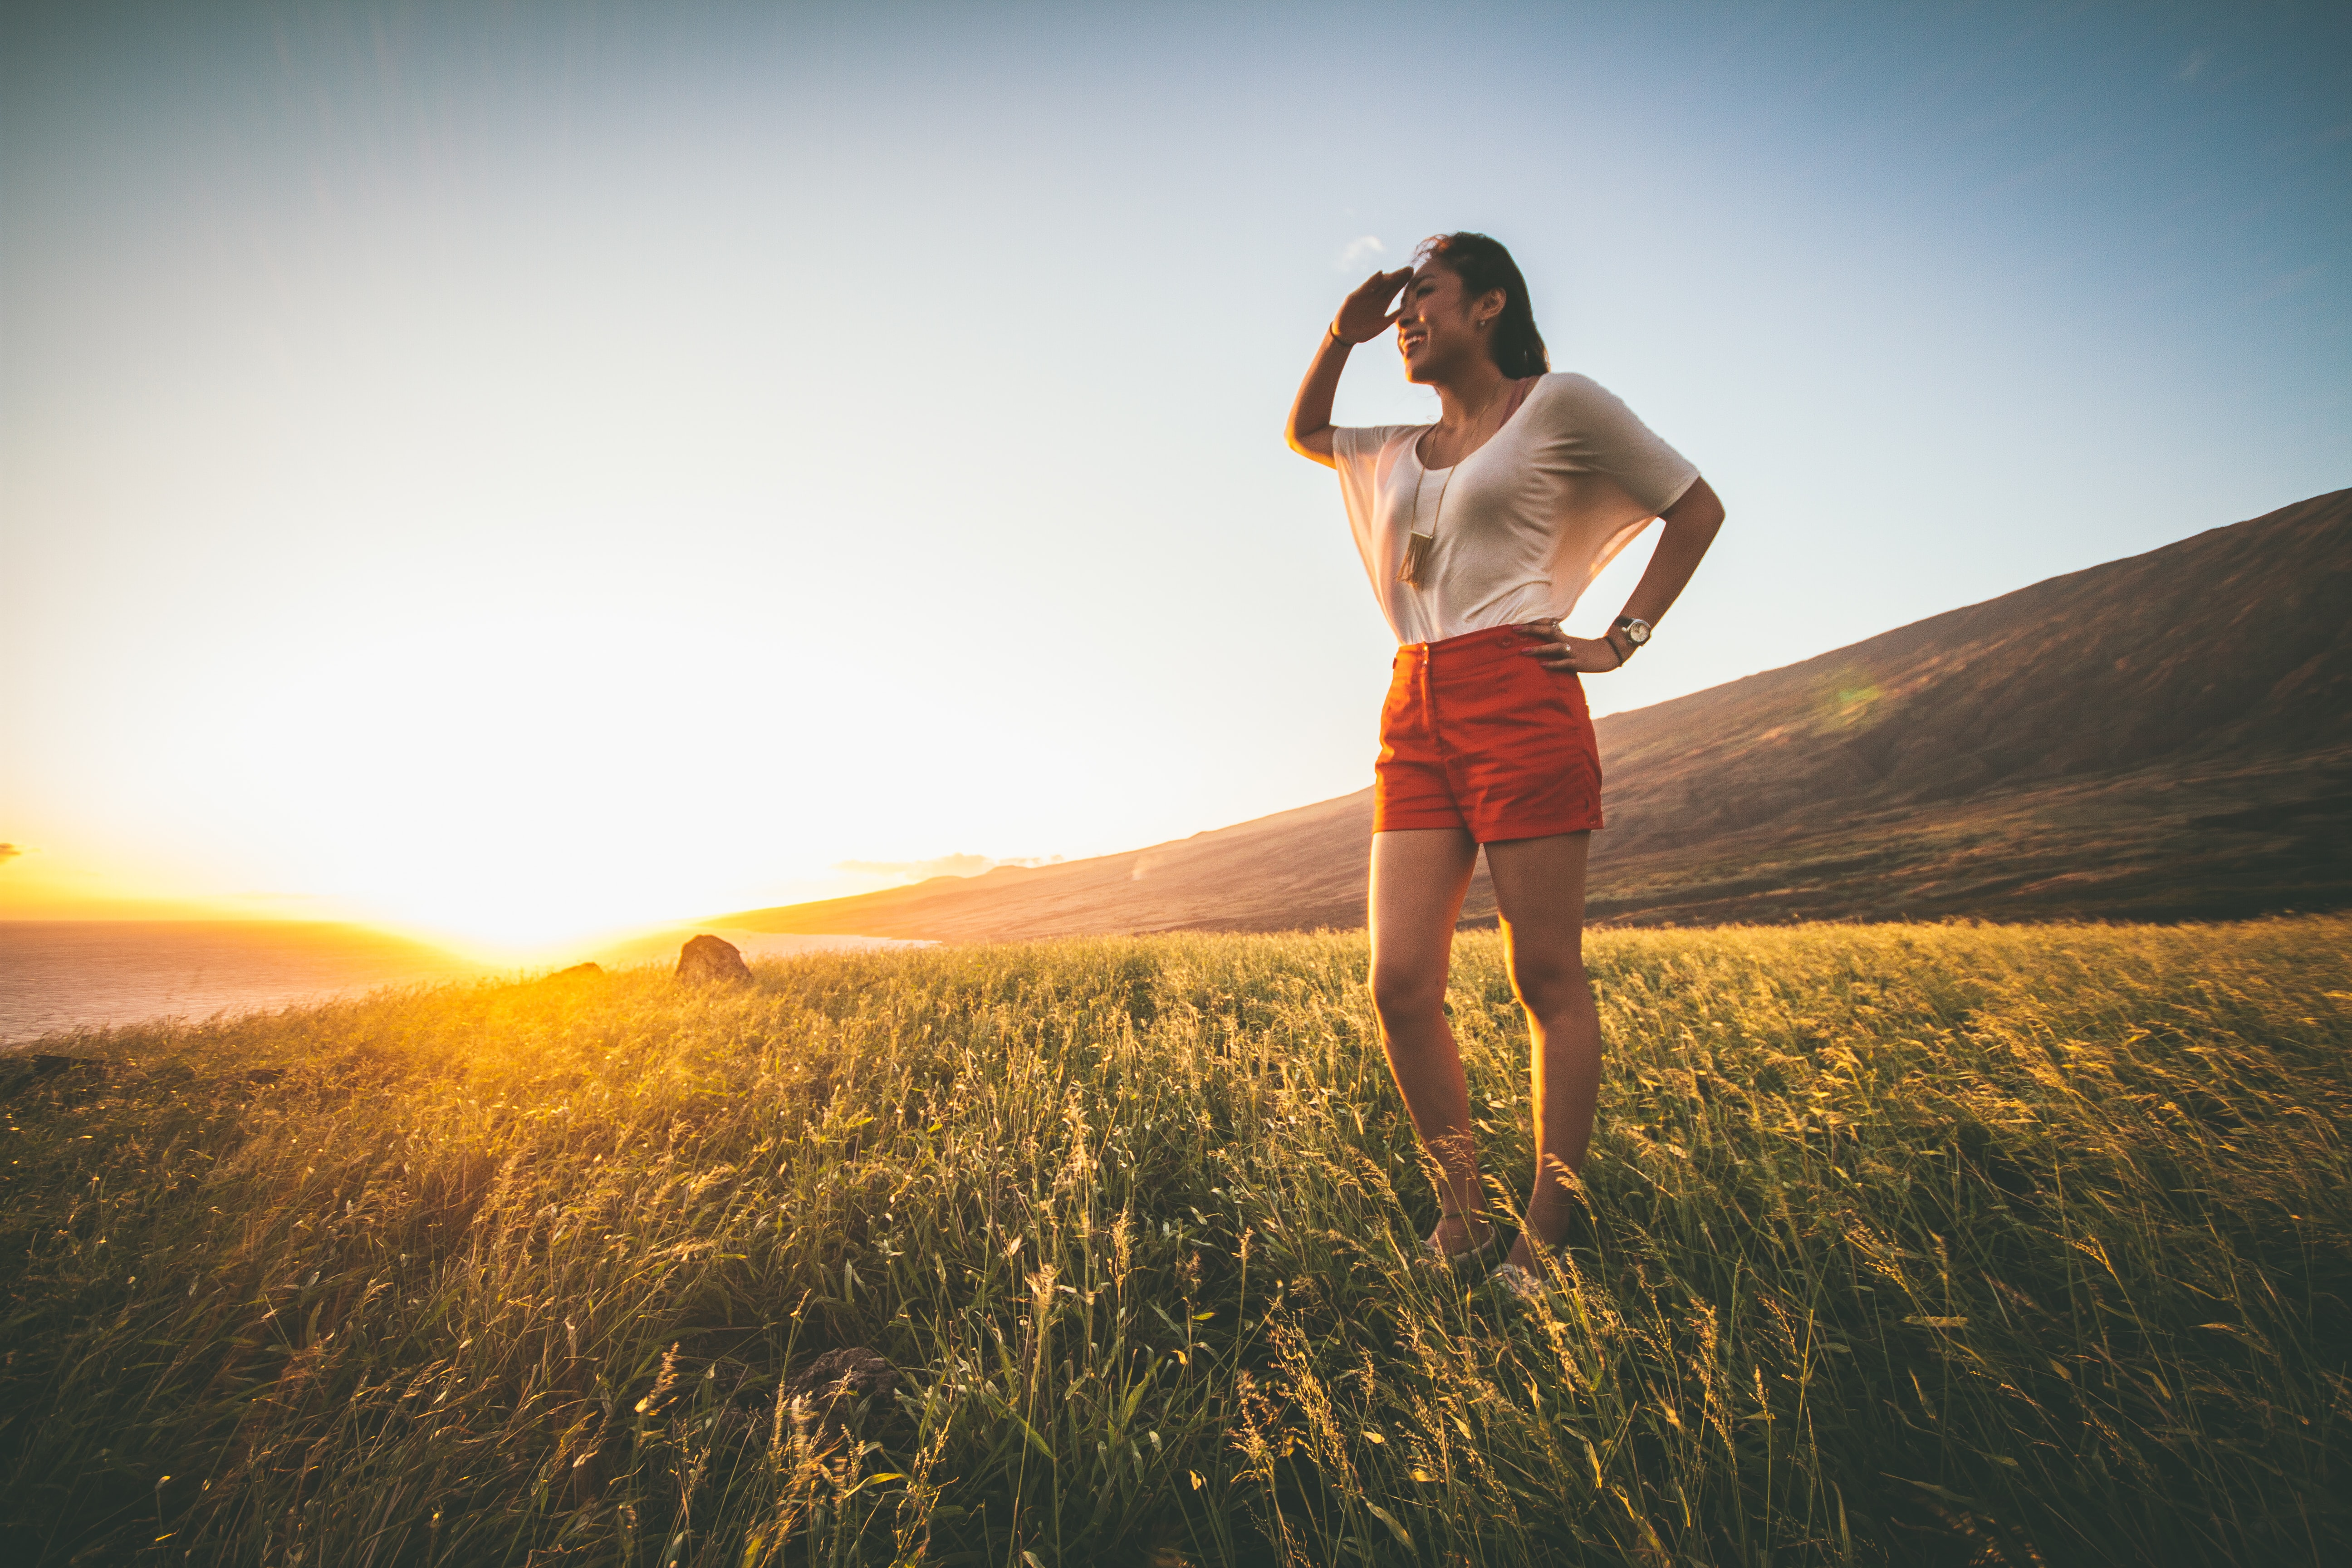 woman in beige batwing sleeved shirt and red shorts standing on grass field